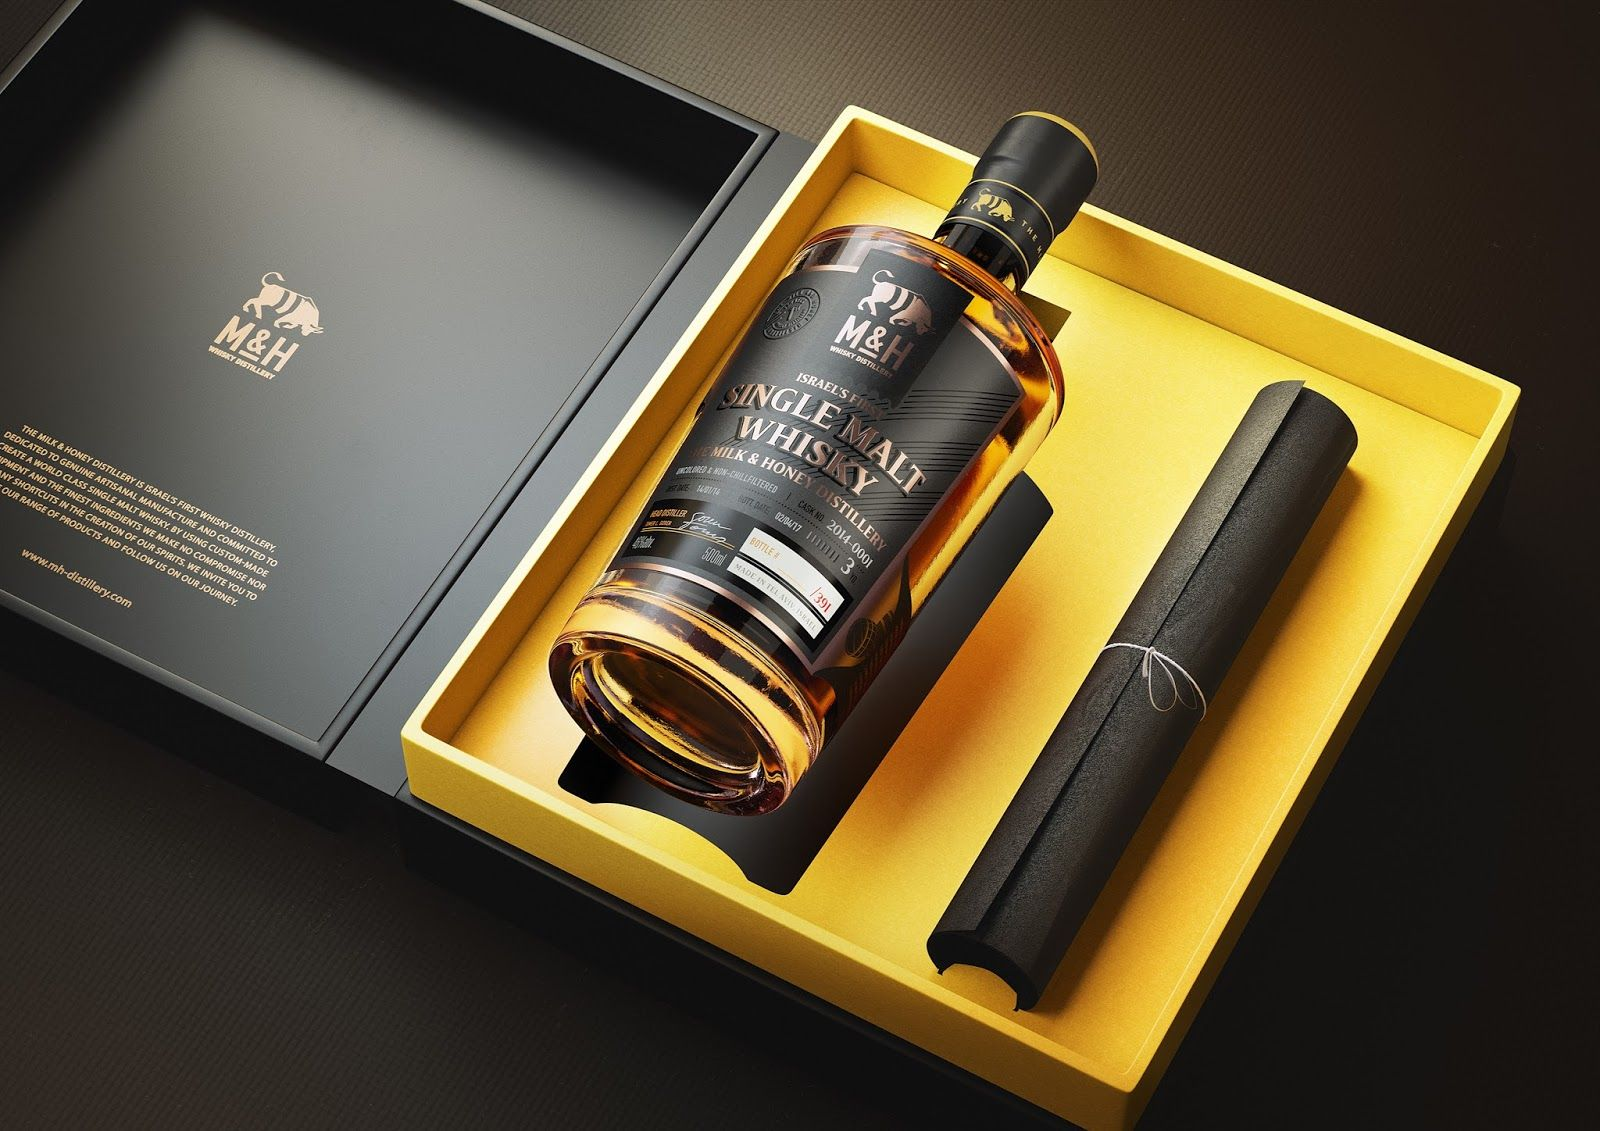 Israel S First Single Malt Whisky In 2020 Whisky Packaging Single Malt Whisky Single Malt